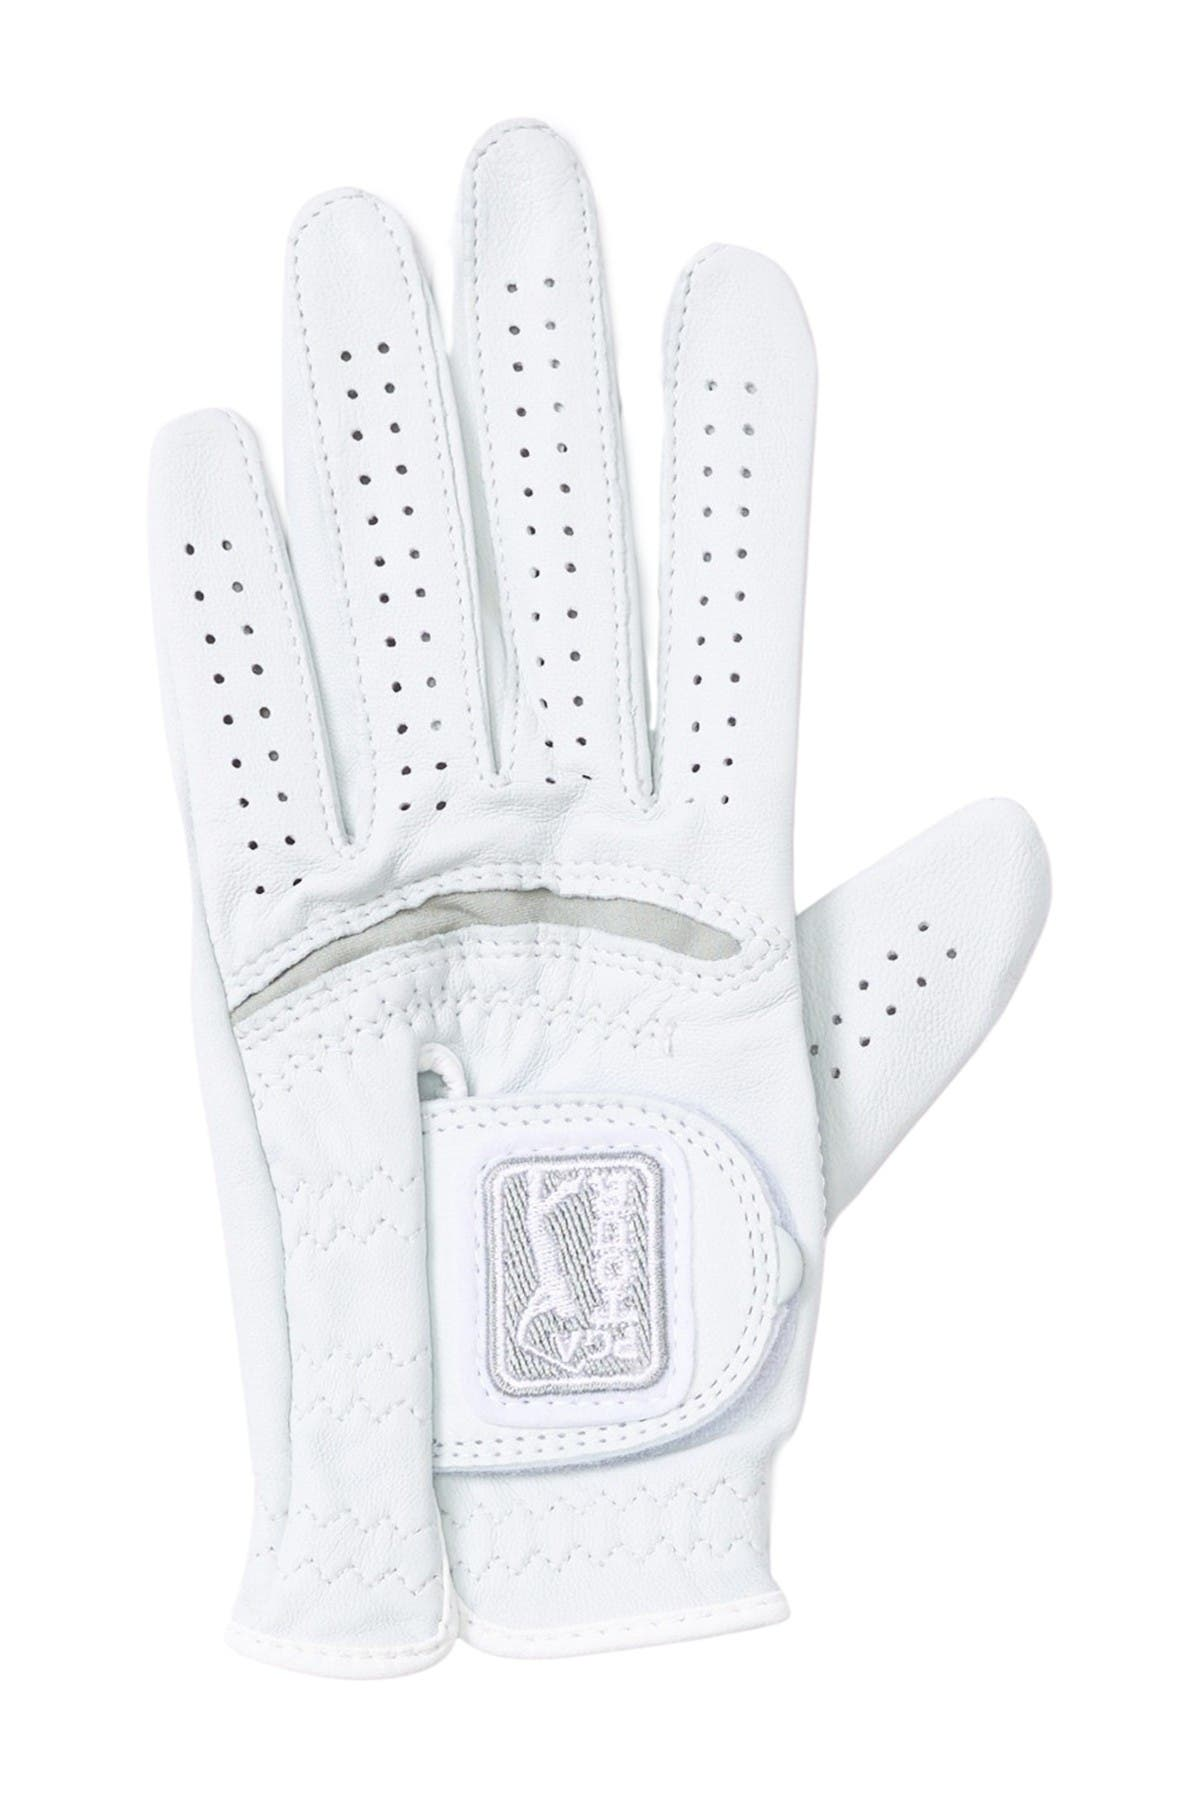 Image of PGA TOUR Women's Leather Left Hand Golf Glove